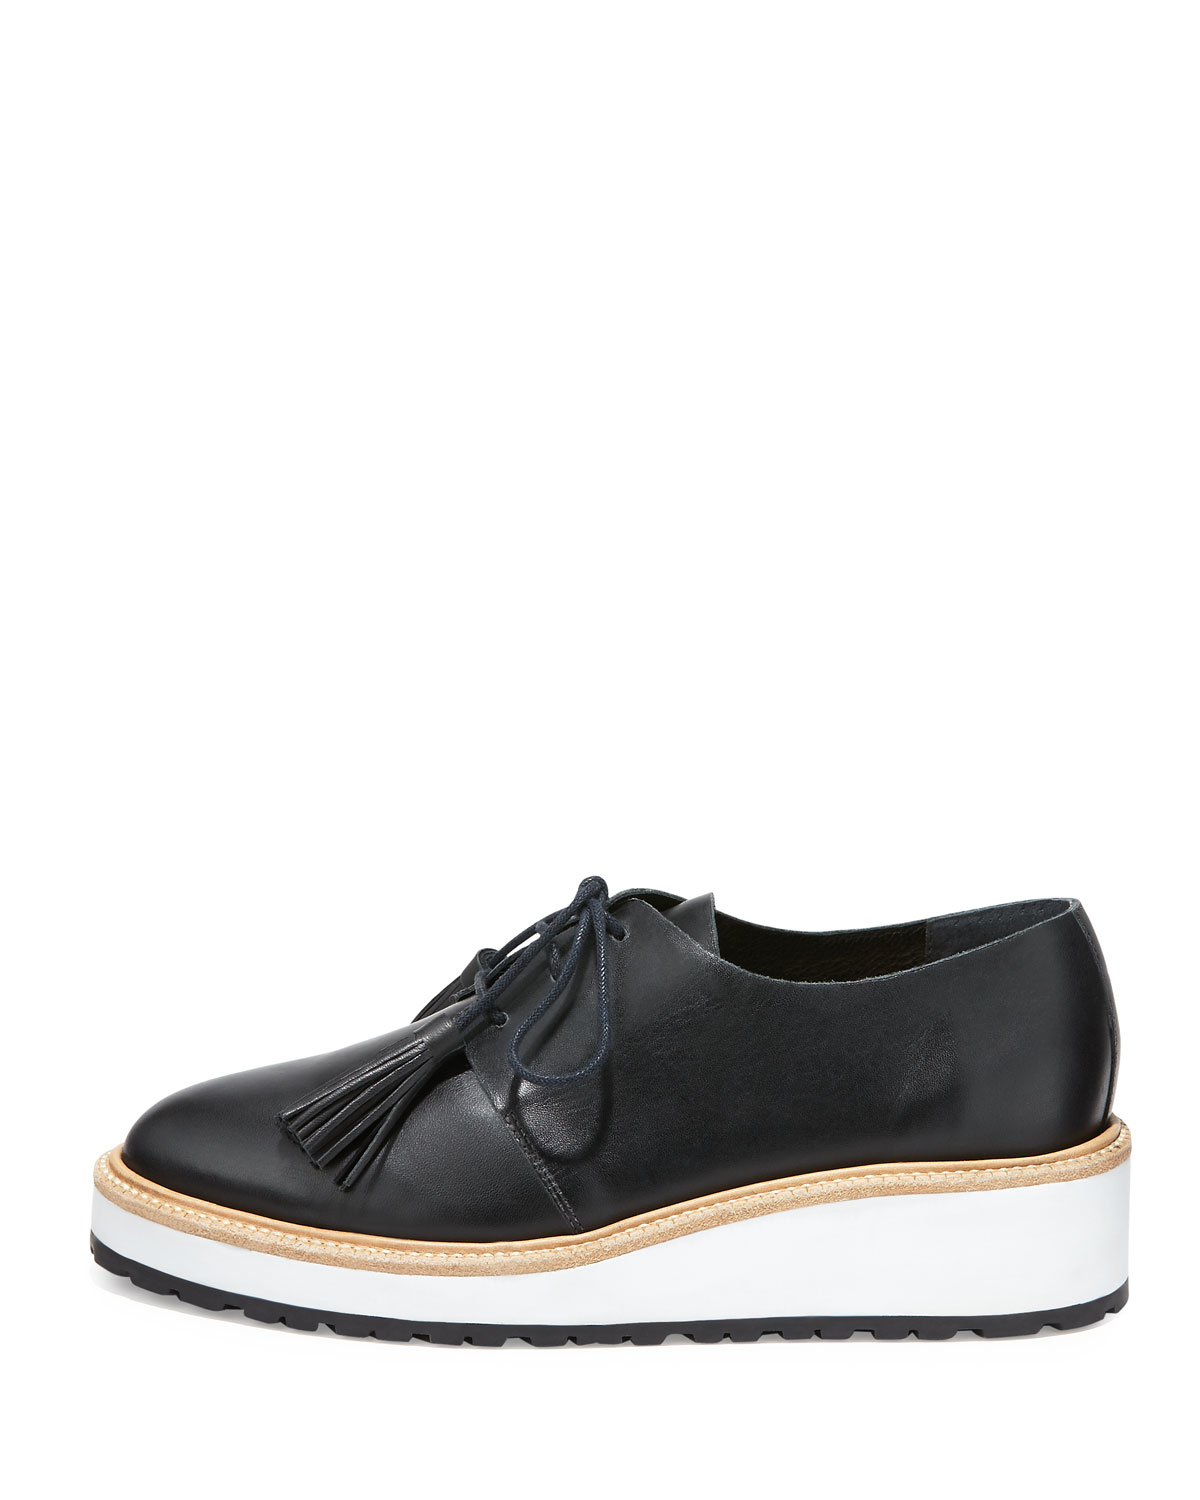 537bf0971f8 Callie Leather Demi-Wedge Oxford, Black